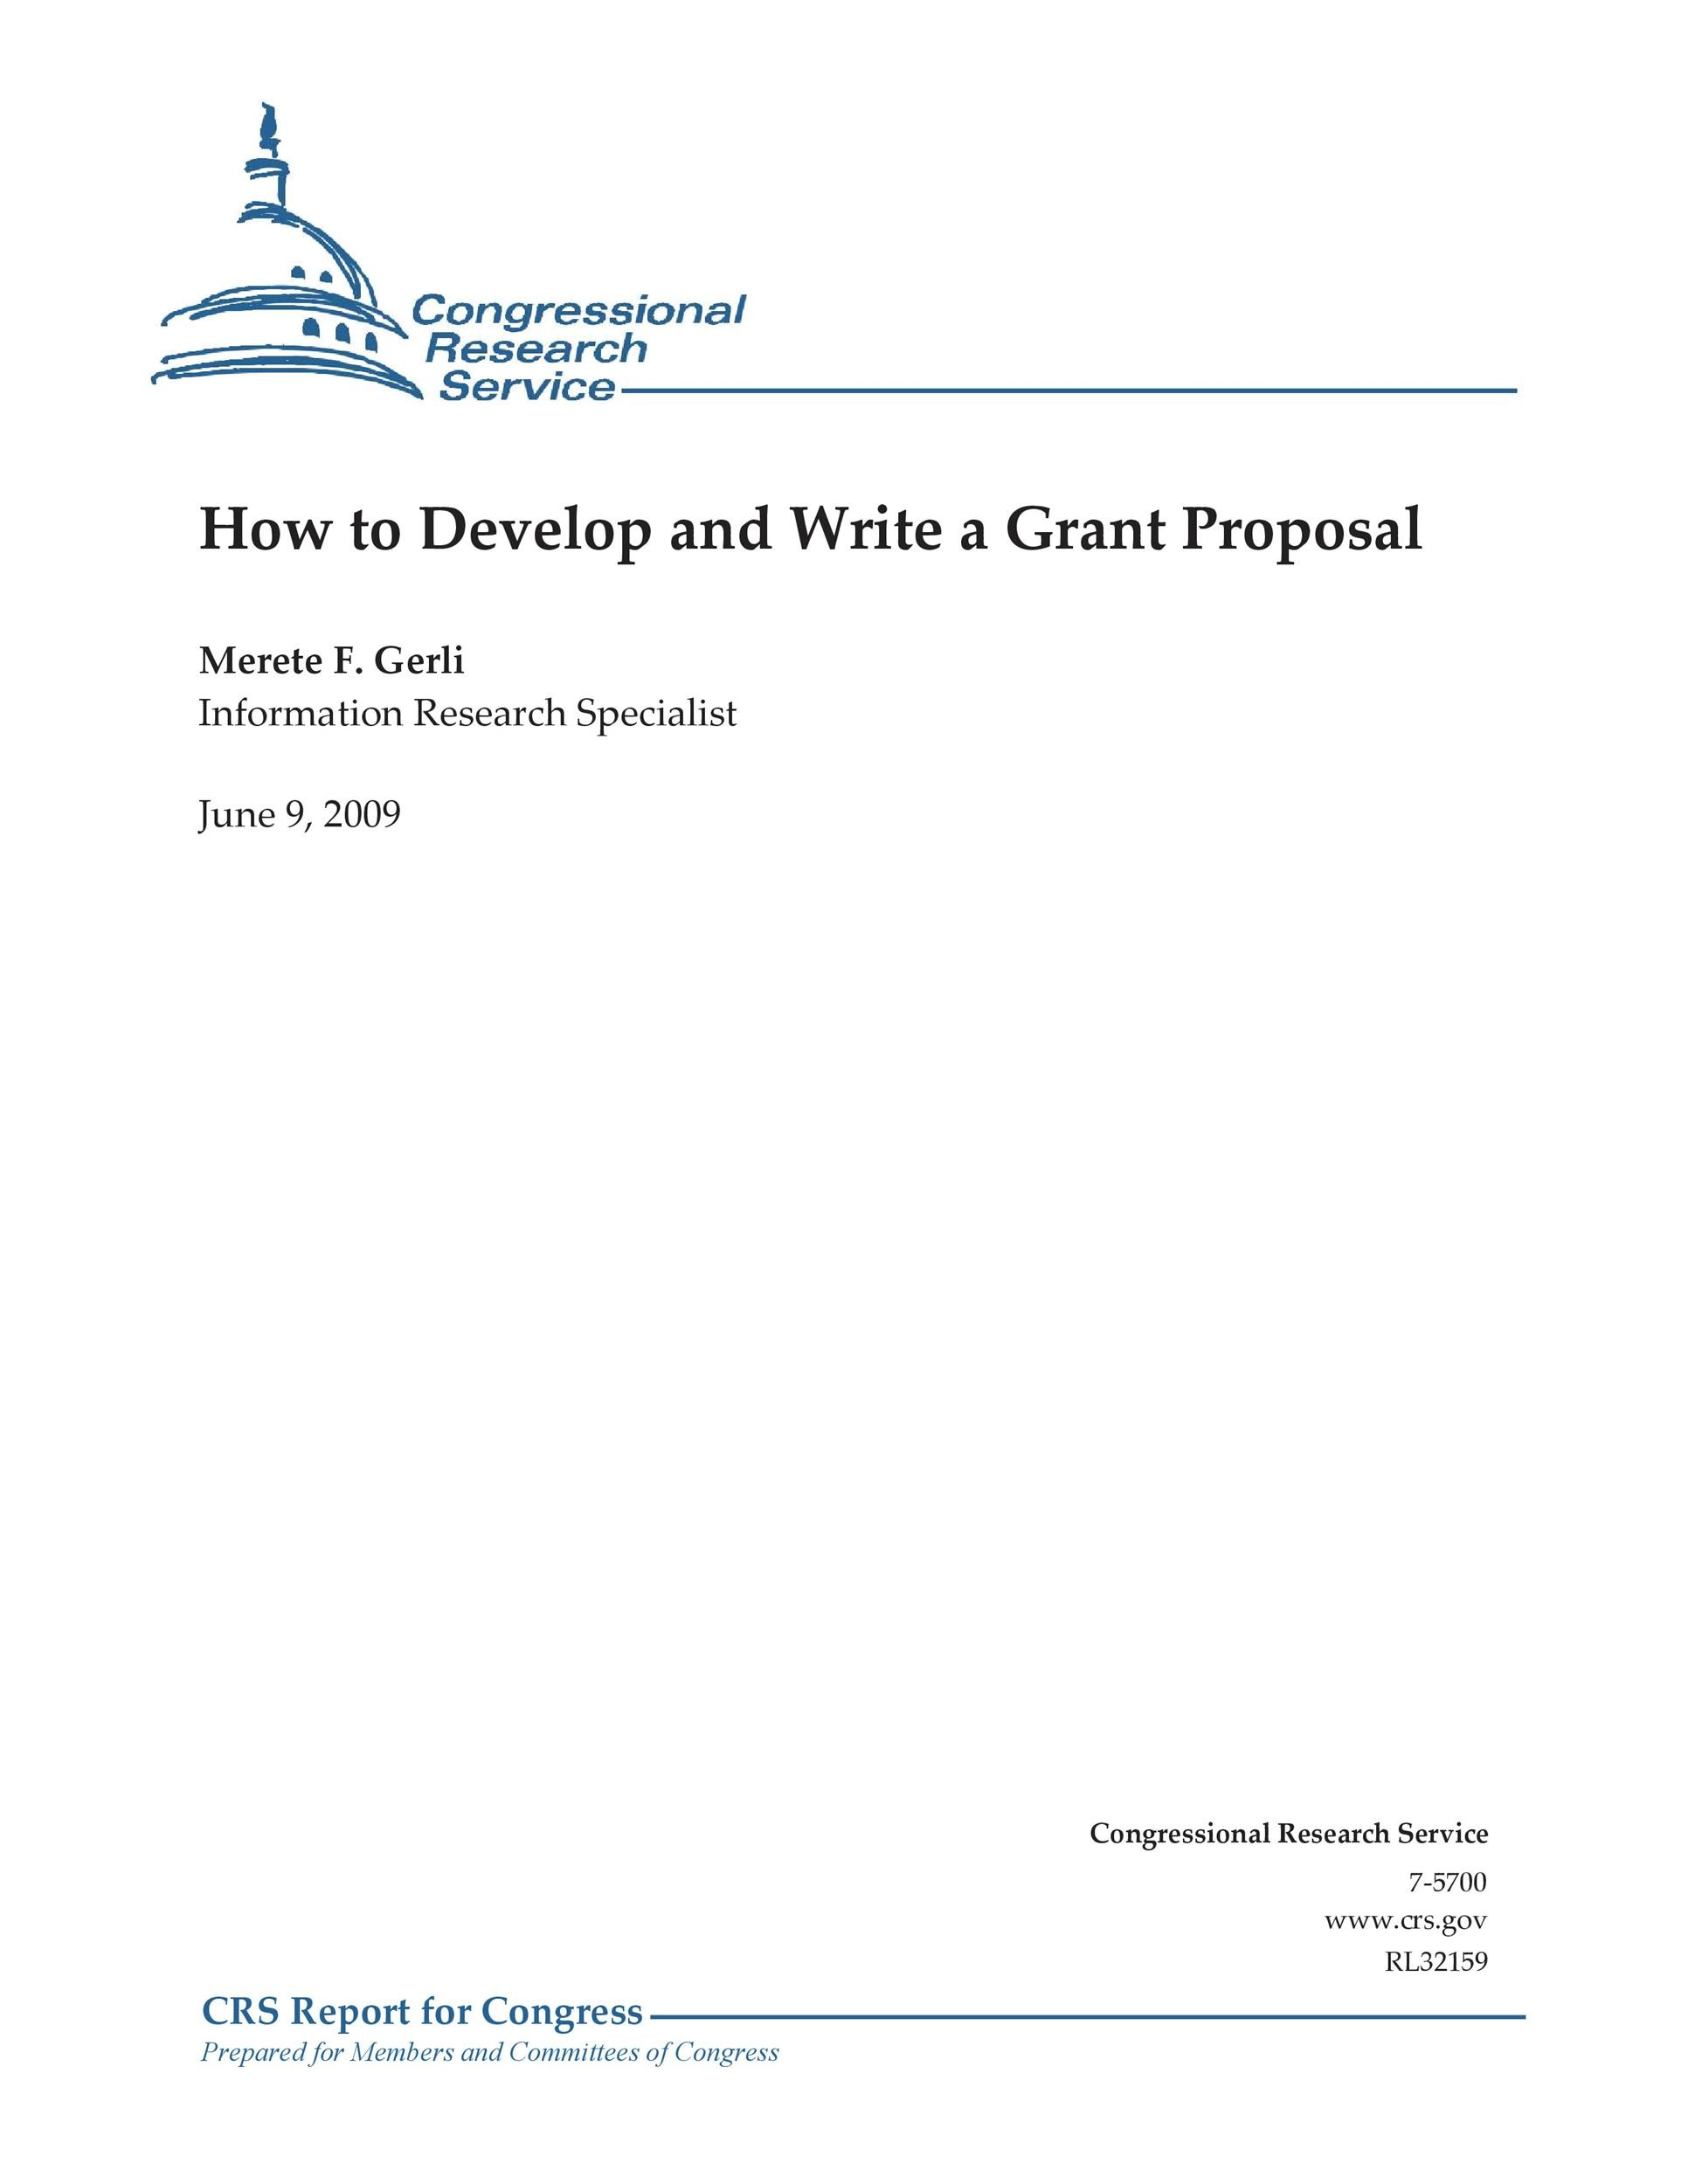 Free grant proposal template  24